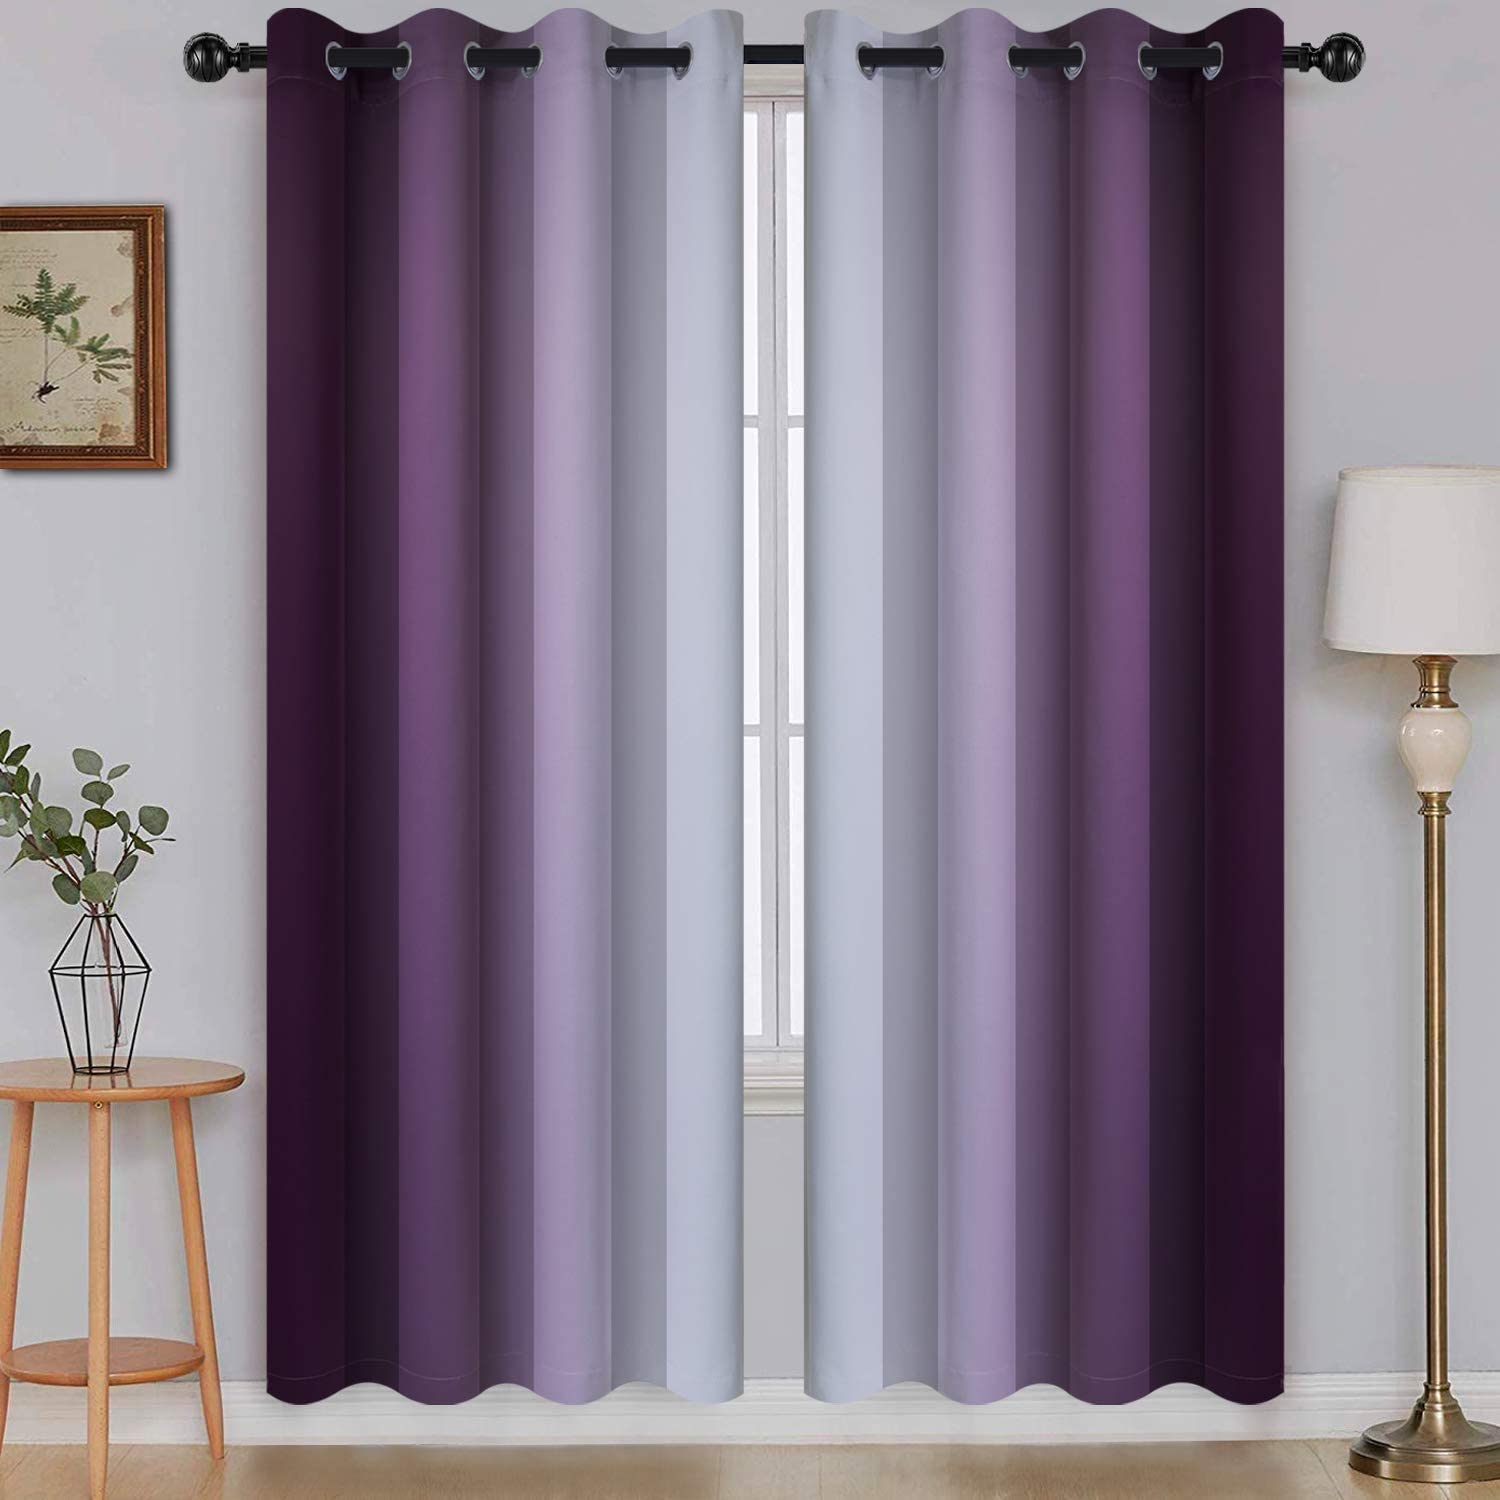 Ombre Room Darkening Curtains for Living Room, Light Blocking Gradient Purple to Gray White Thick Thermal Insulated Grommet Window Curtains /Drapes for Bedroom, 2 Panels, 52x72 inches Length